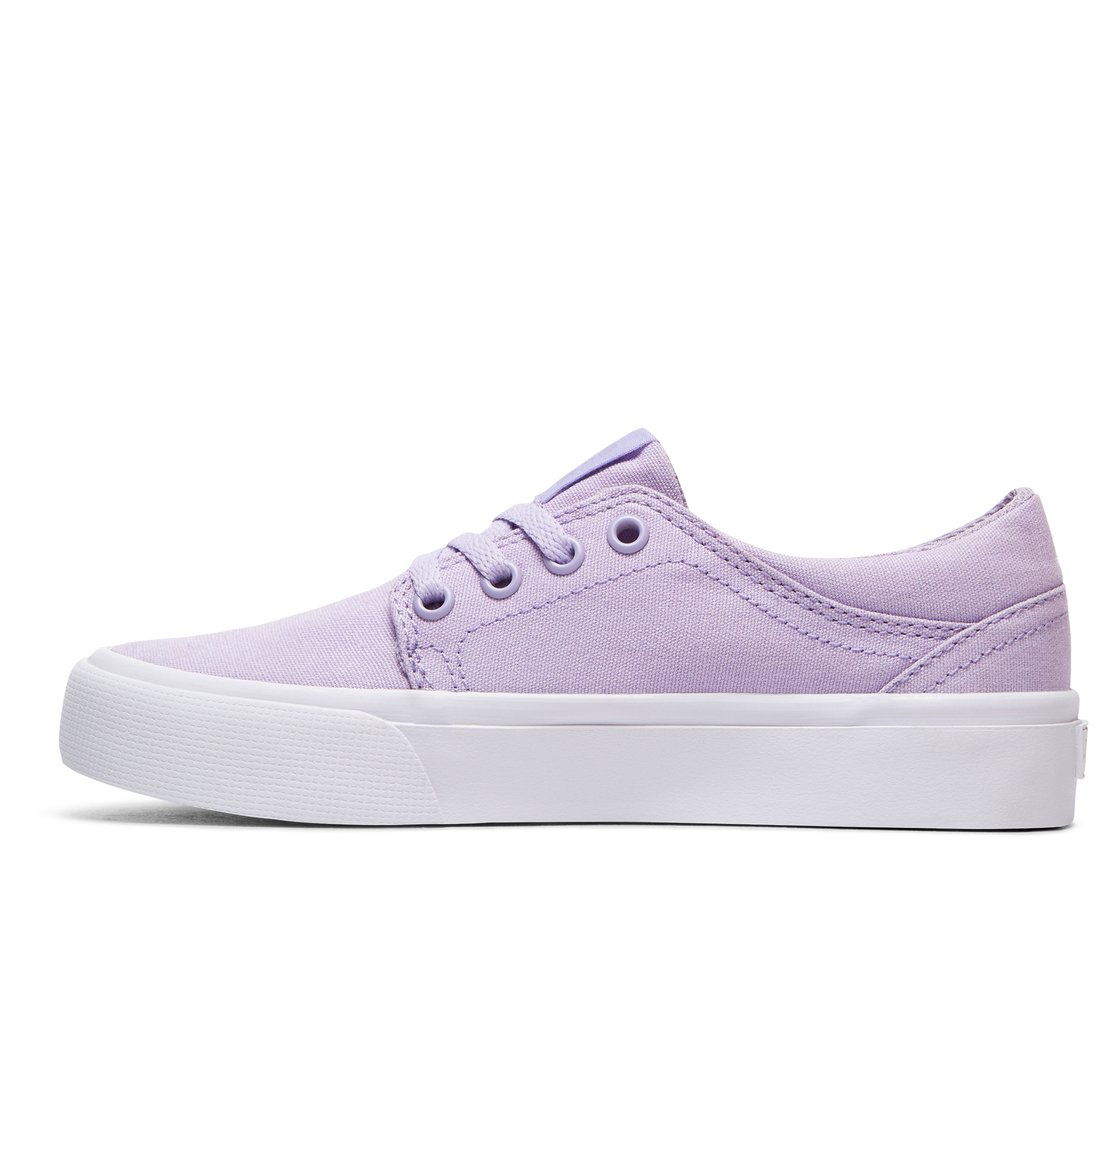 2 Trase TX - Shoes for Girls Purple ADGS300061 DC Shoes 99ad85e029c